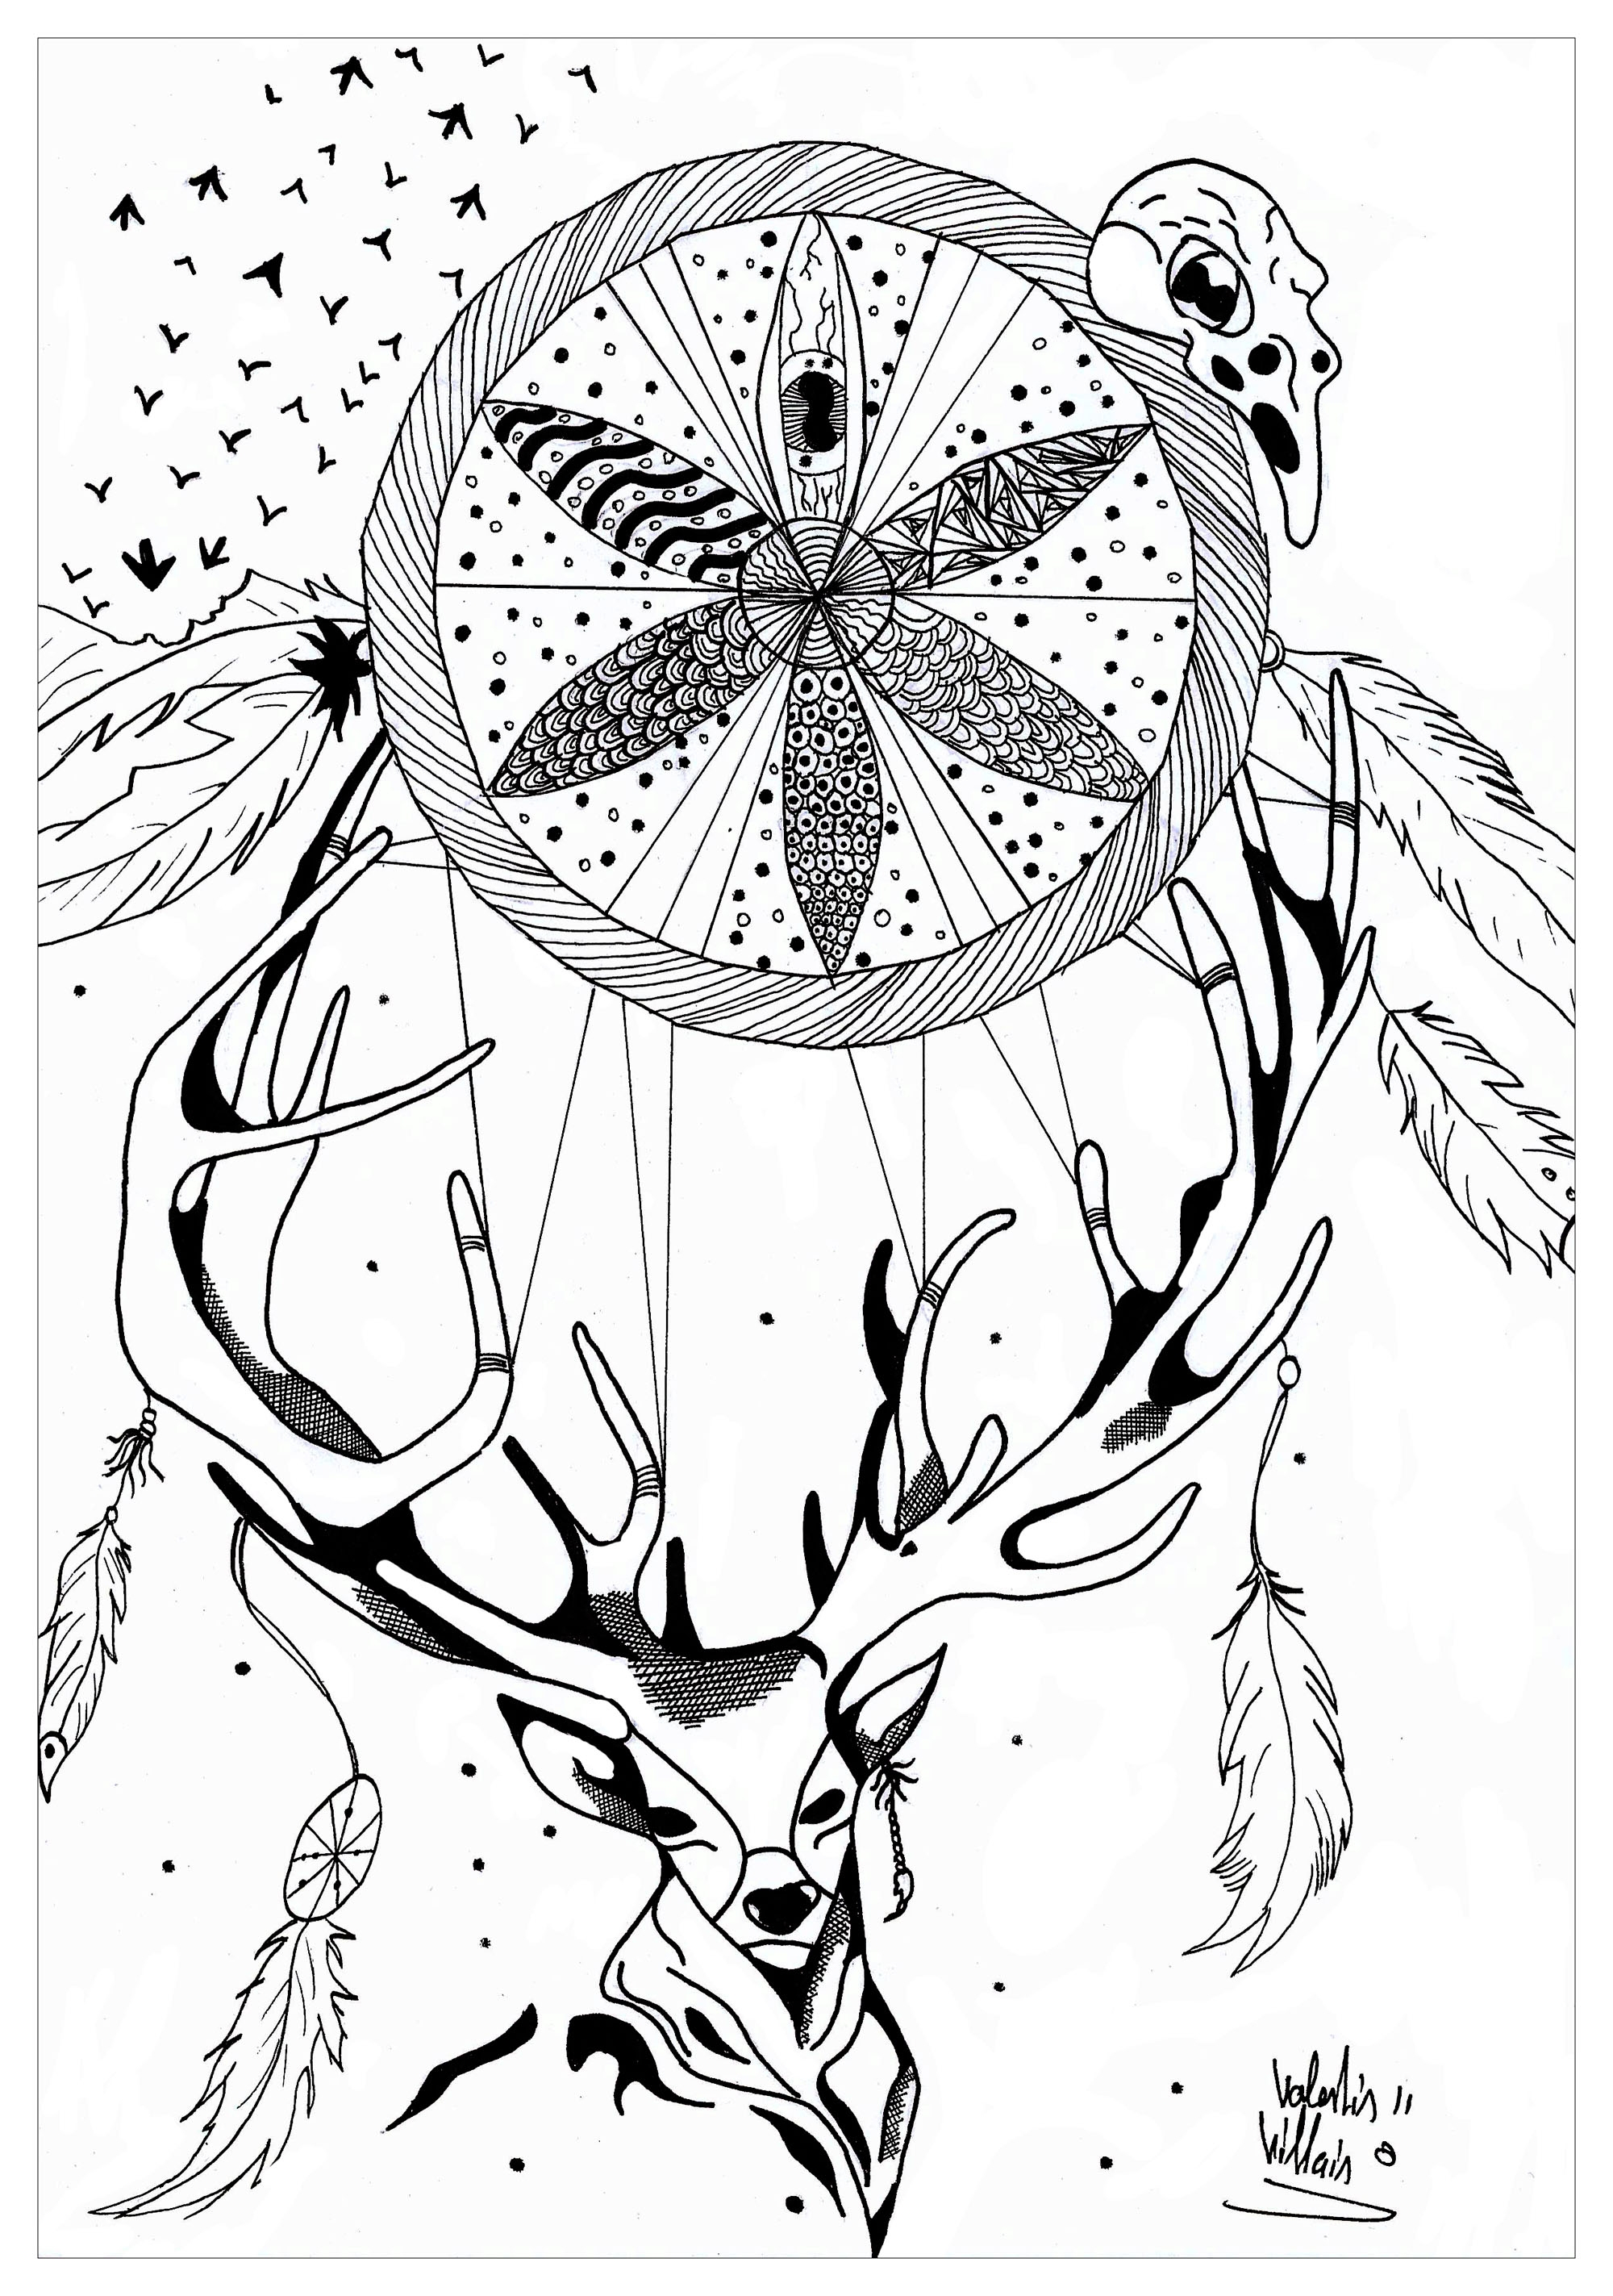 20 Trippy Coloring Pages Images | FREE COLORING PAGES - Part 2